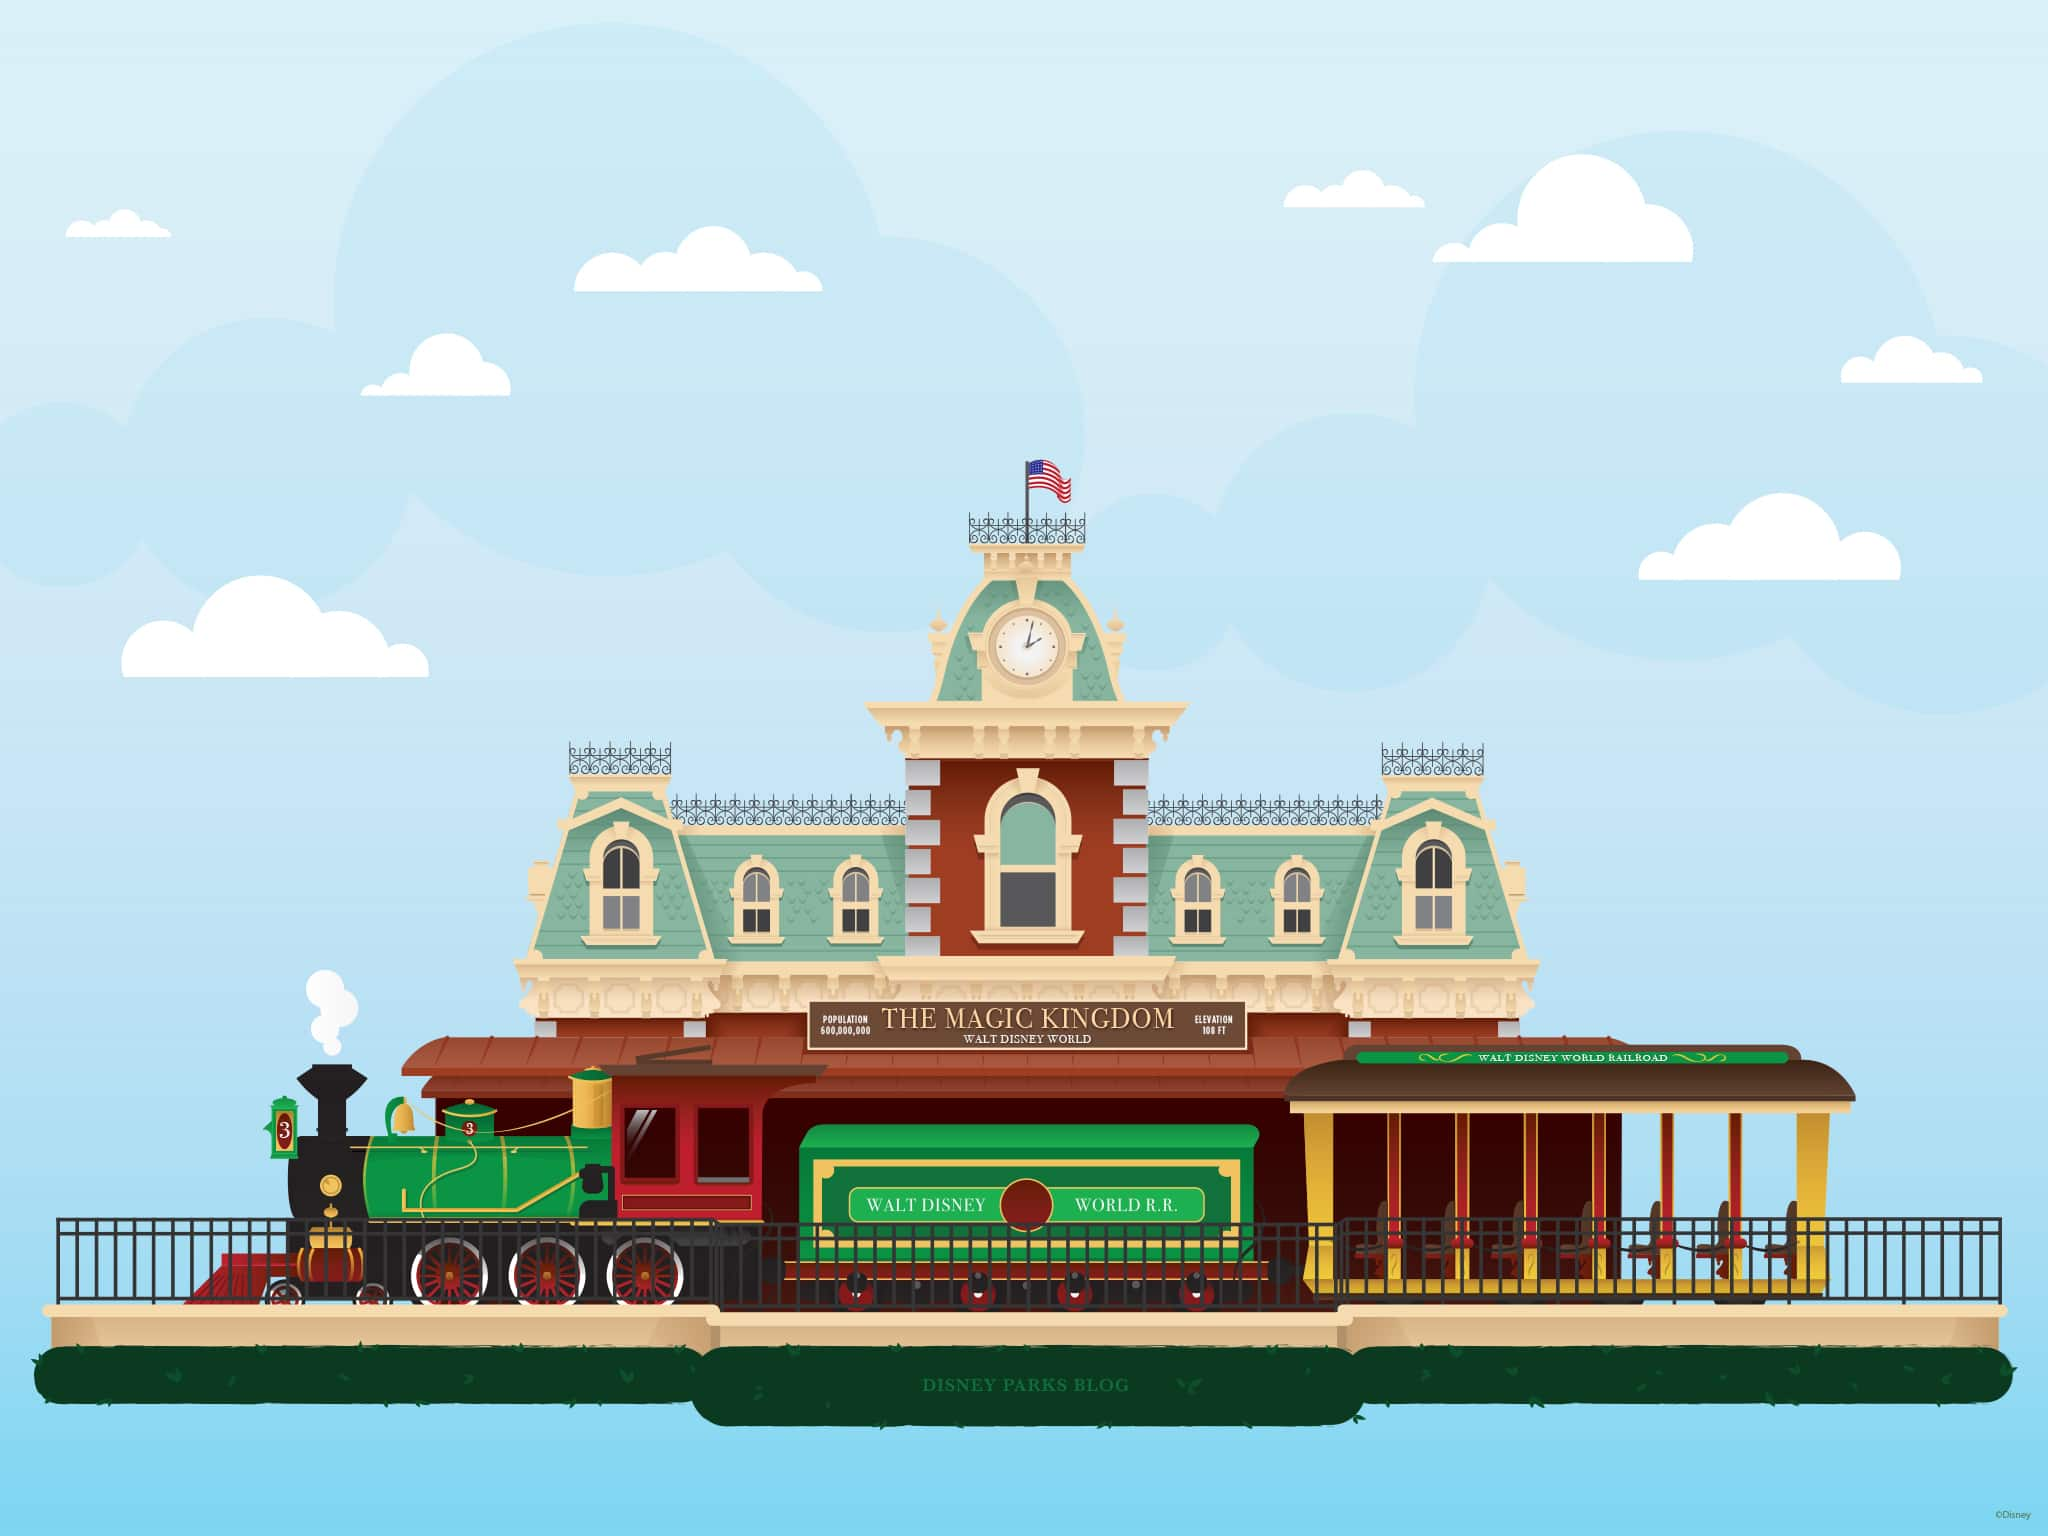 45th Anniversary Wallpaper Walt Disney World Railroad Train Station Desktop Disney Parks Blog